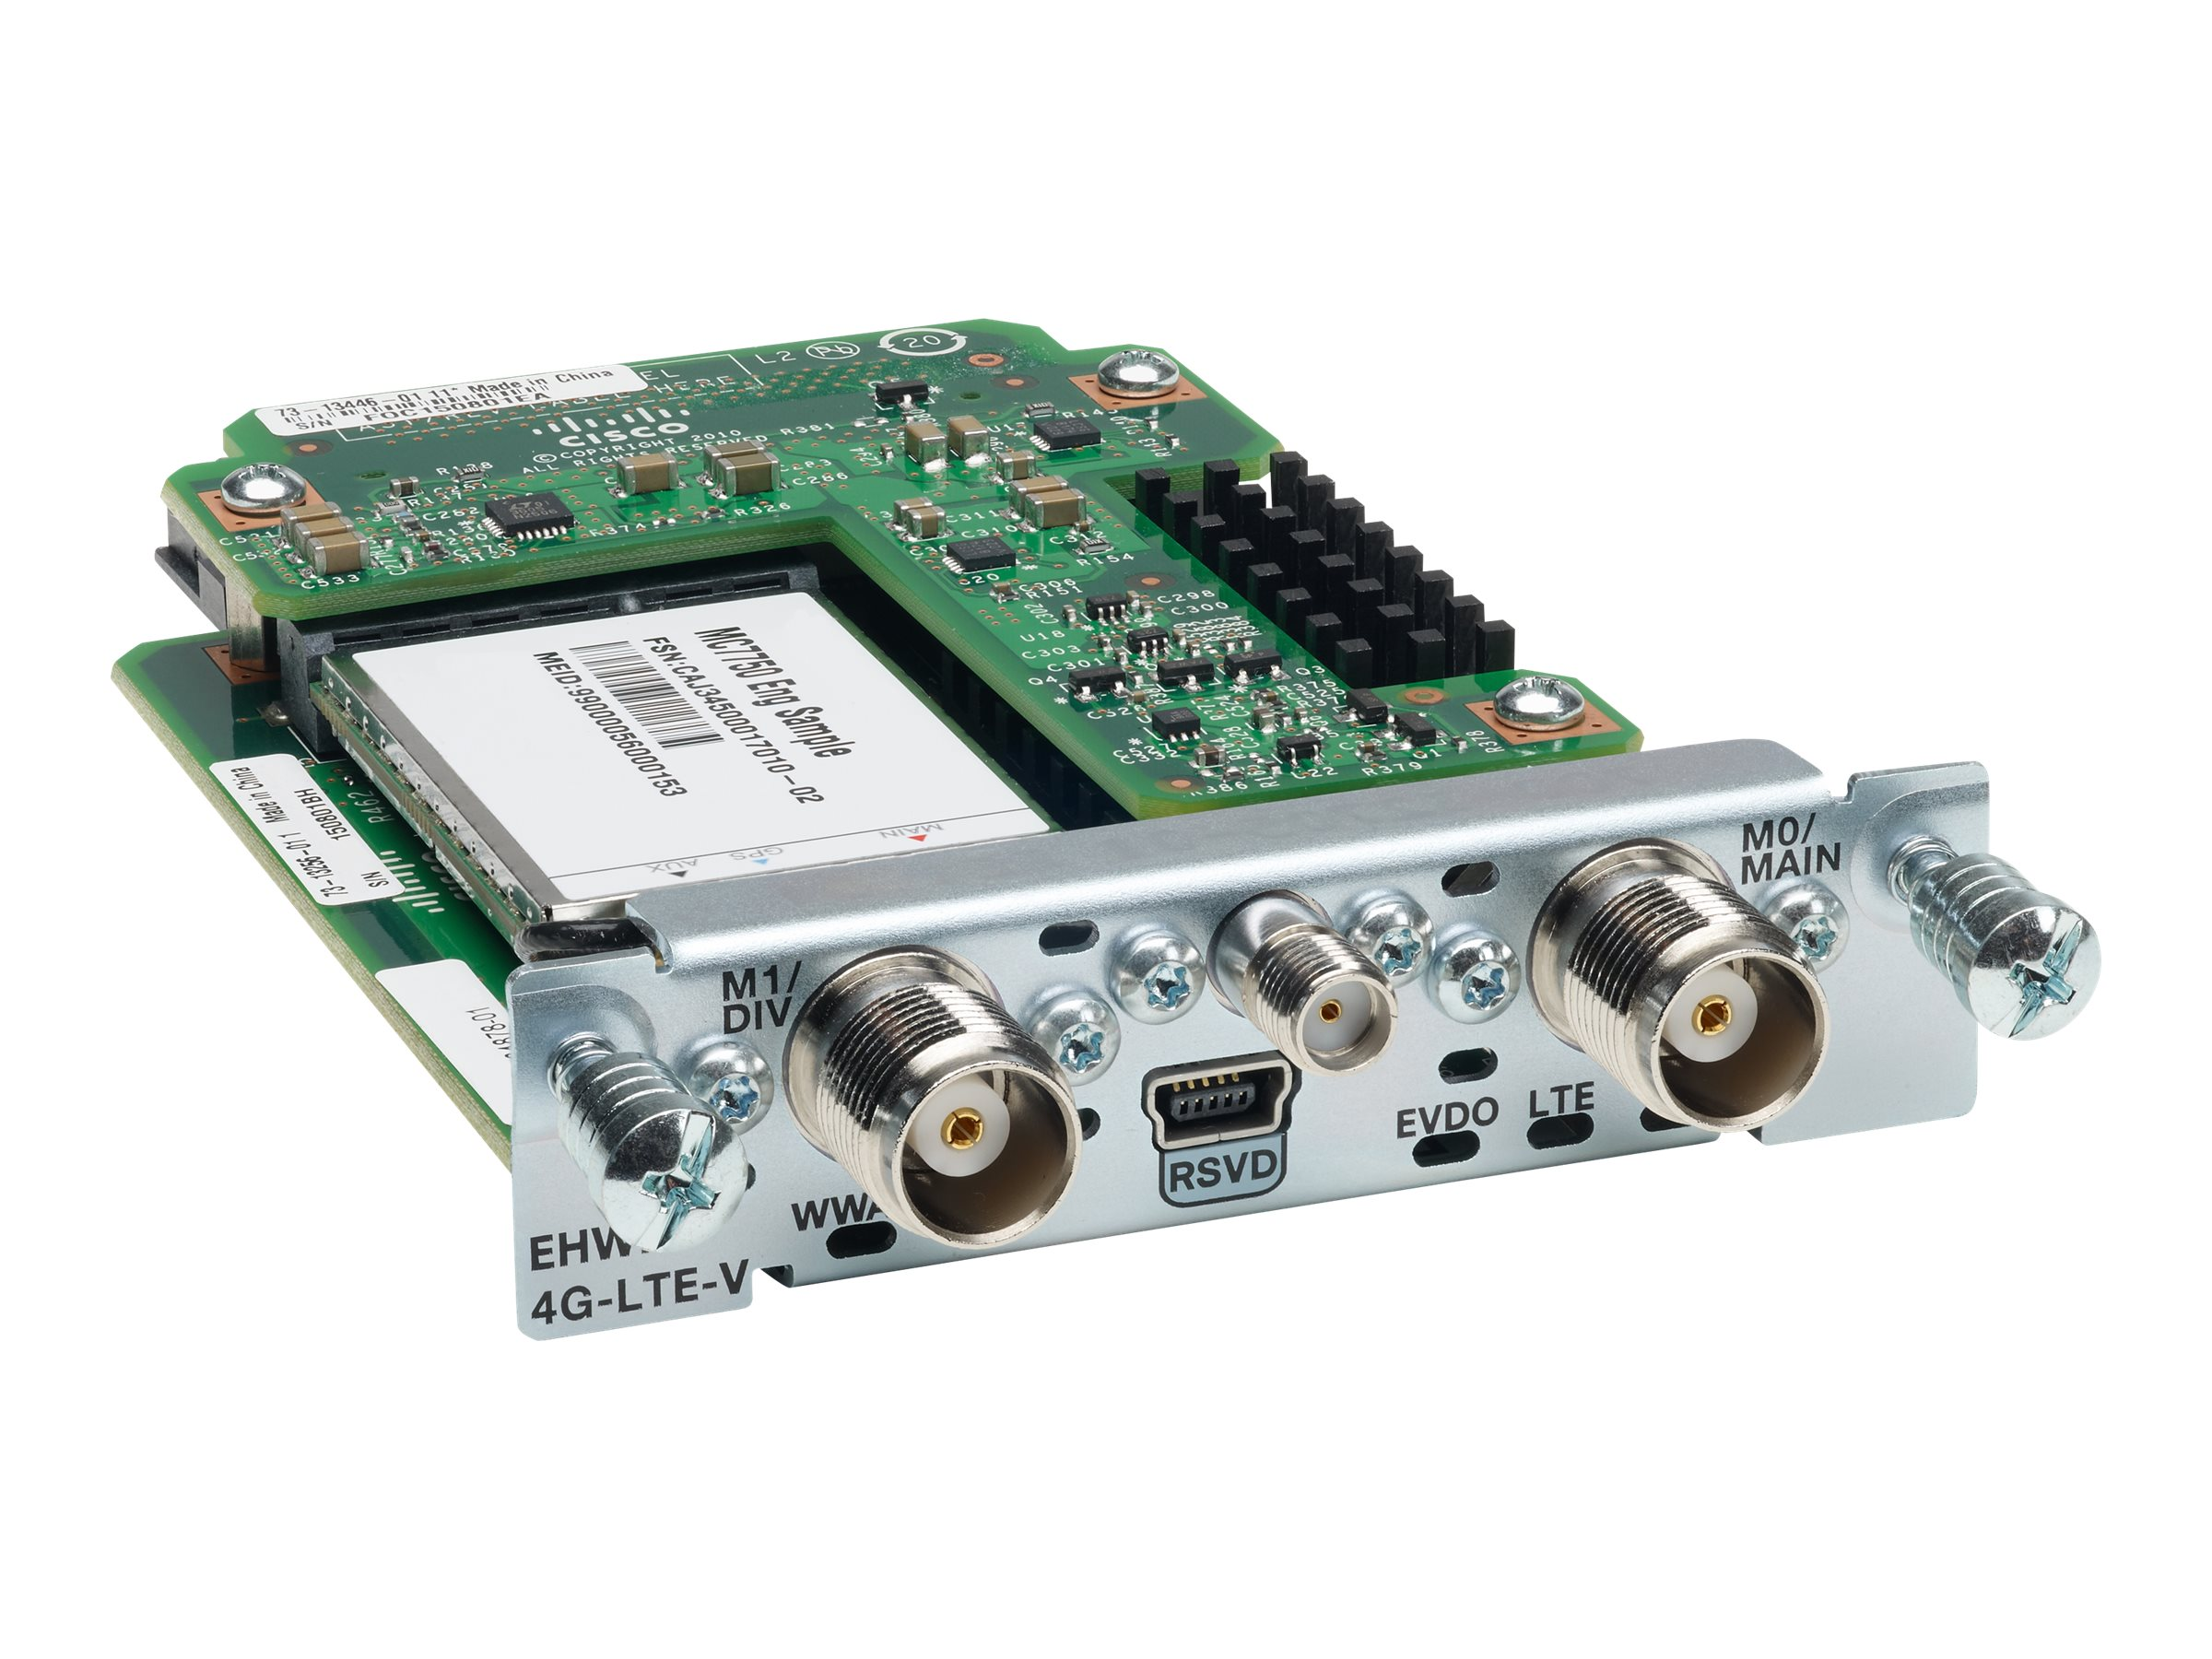 Cisco 4G LTE Enhanced High-speed WAN Interface Card 800 900 1800 2100MHZ (Australia), EHWIC-4G-LTE-AU